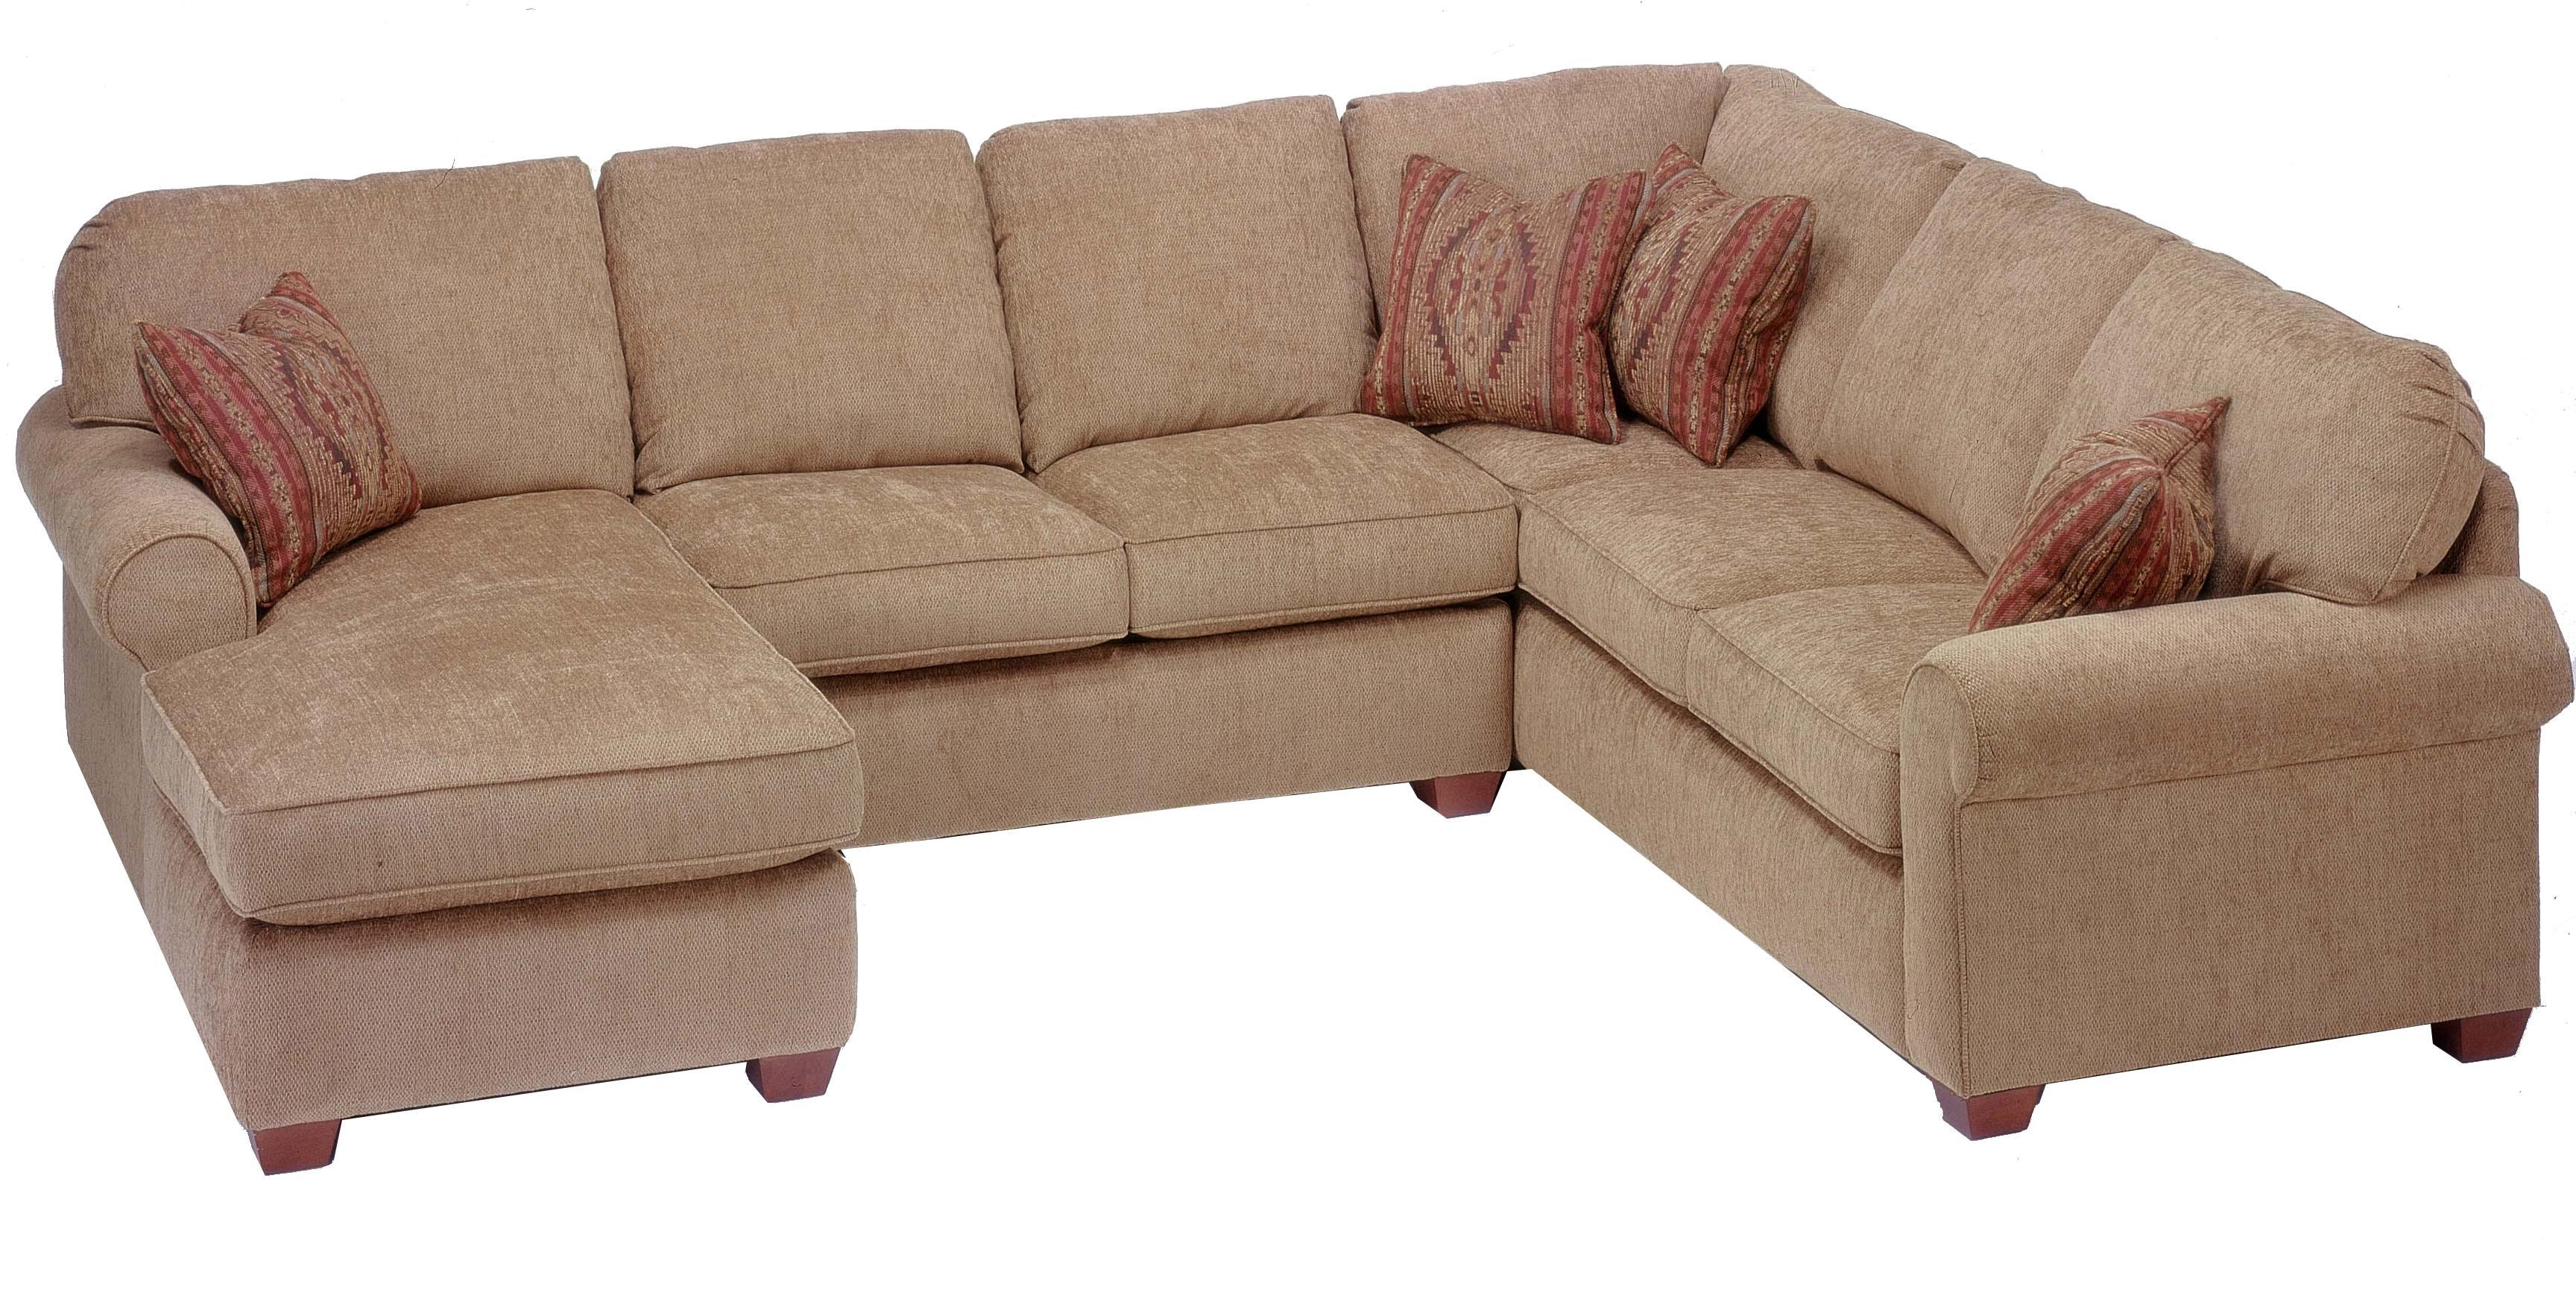 Flexsteel Thornton 3 Piece Sectional With Chaise – Rooms And Rest Regarding Alan White Couches (View 8 of 20)